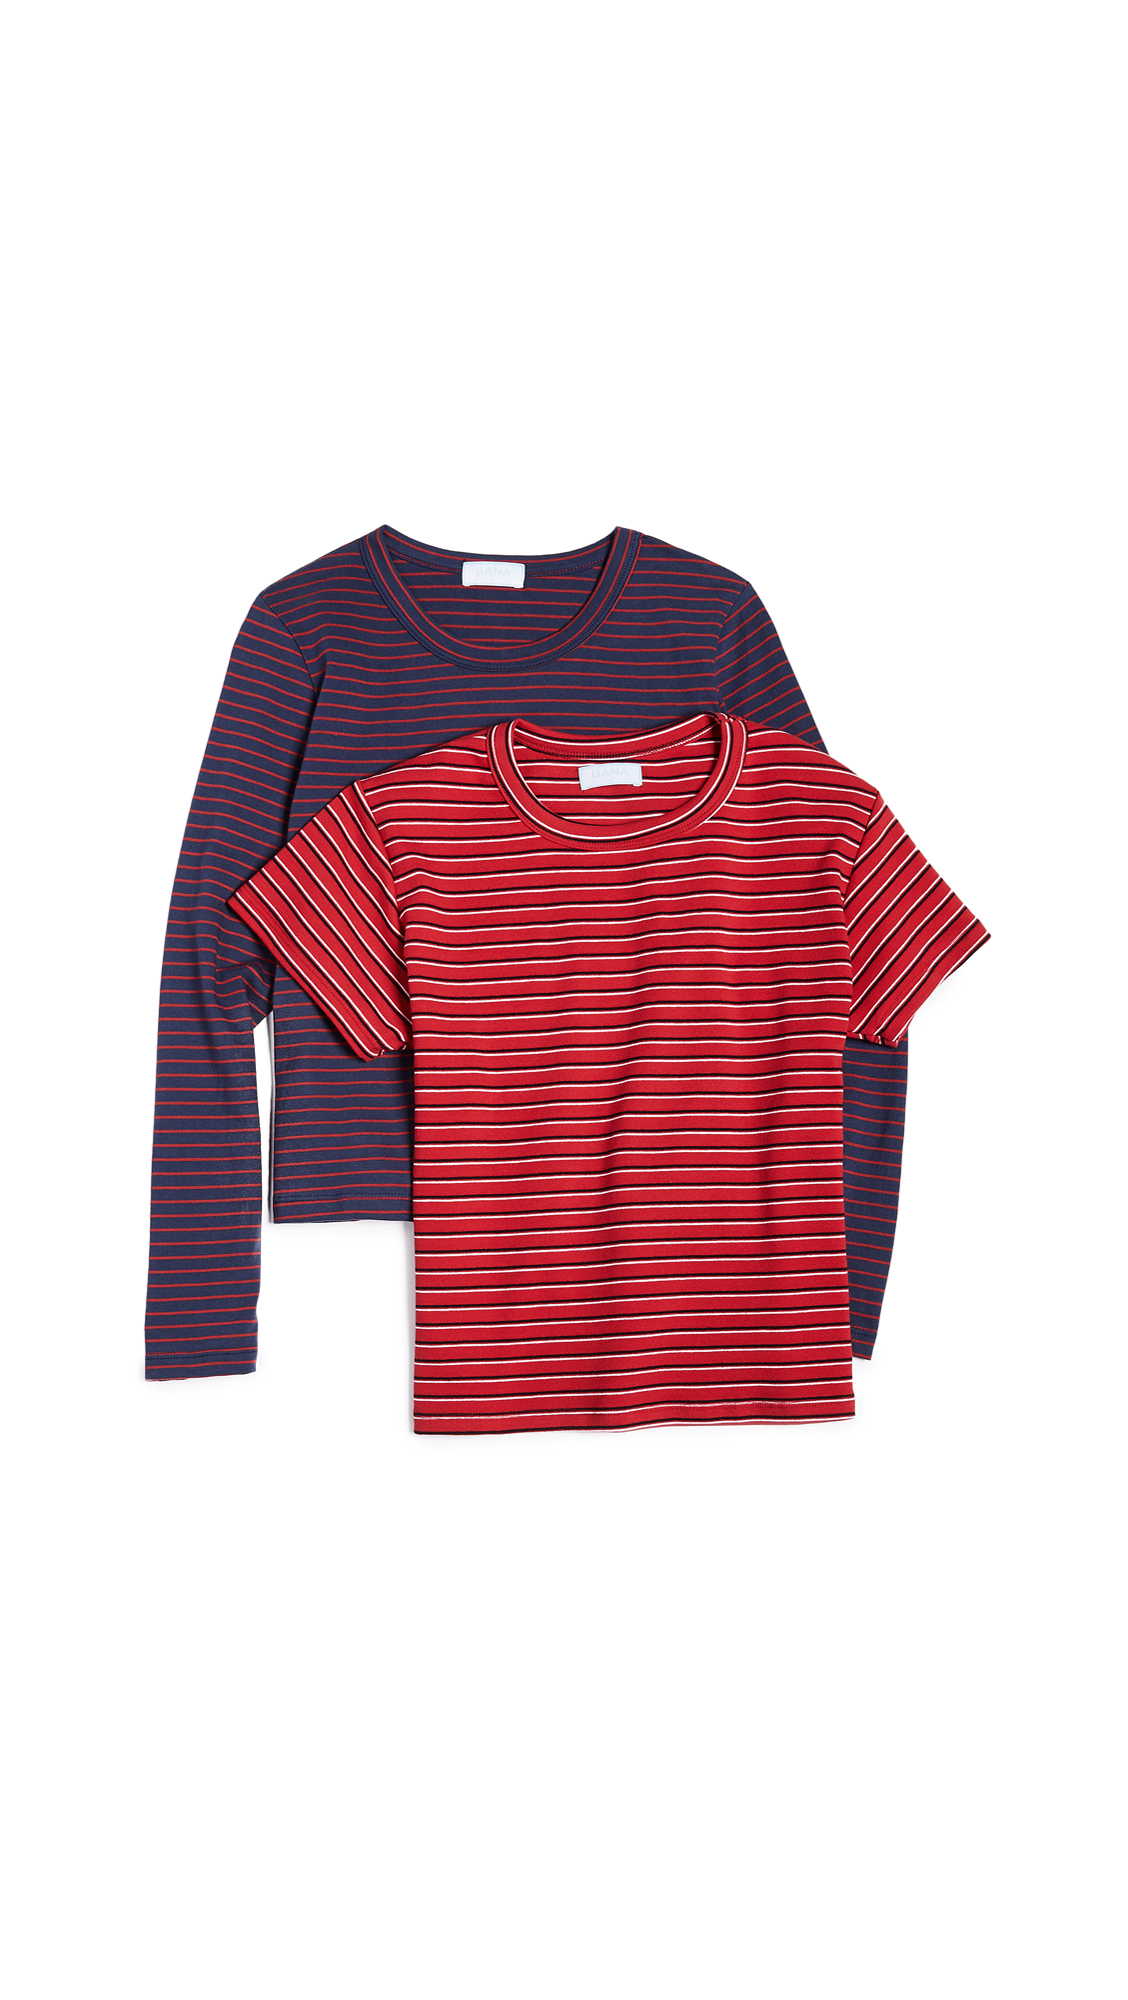 LIANA CLOTHING The Vintage Stripe Essentials Tee 2 Pack in Navy & Red Stripe Combo